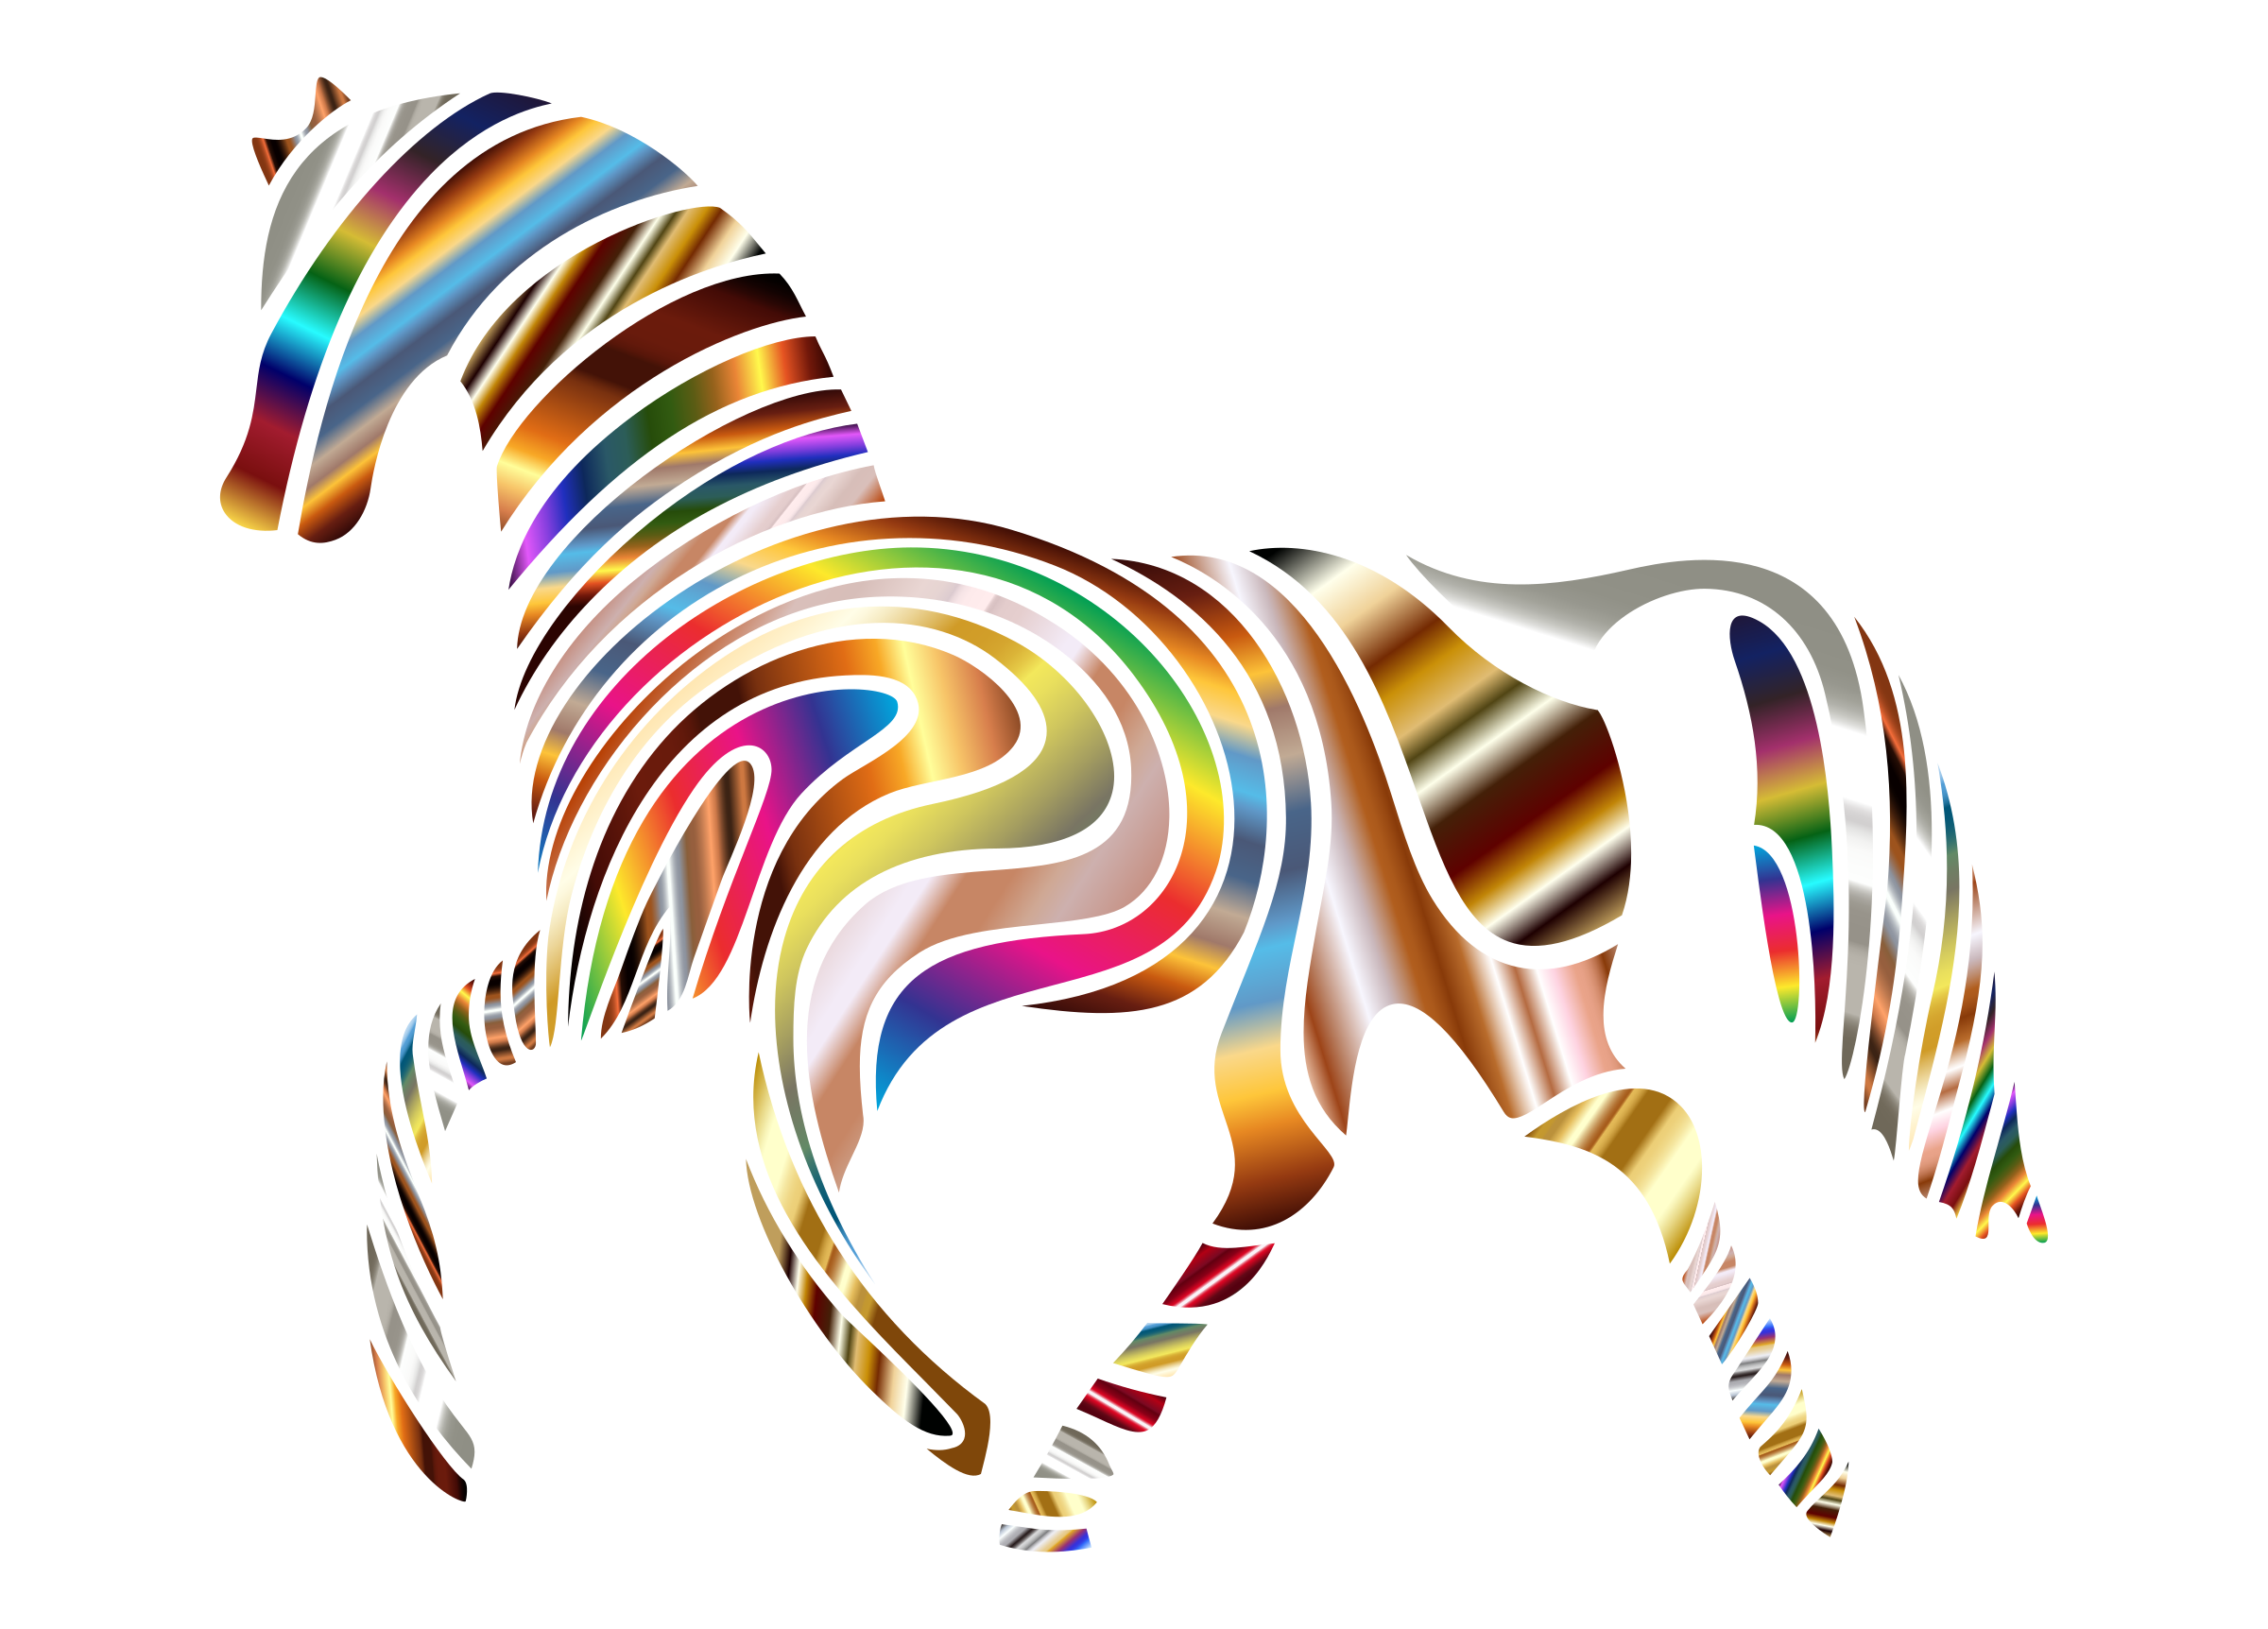 Psychedelic Horse by GDJ